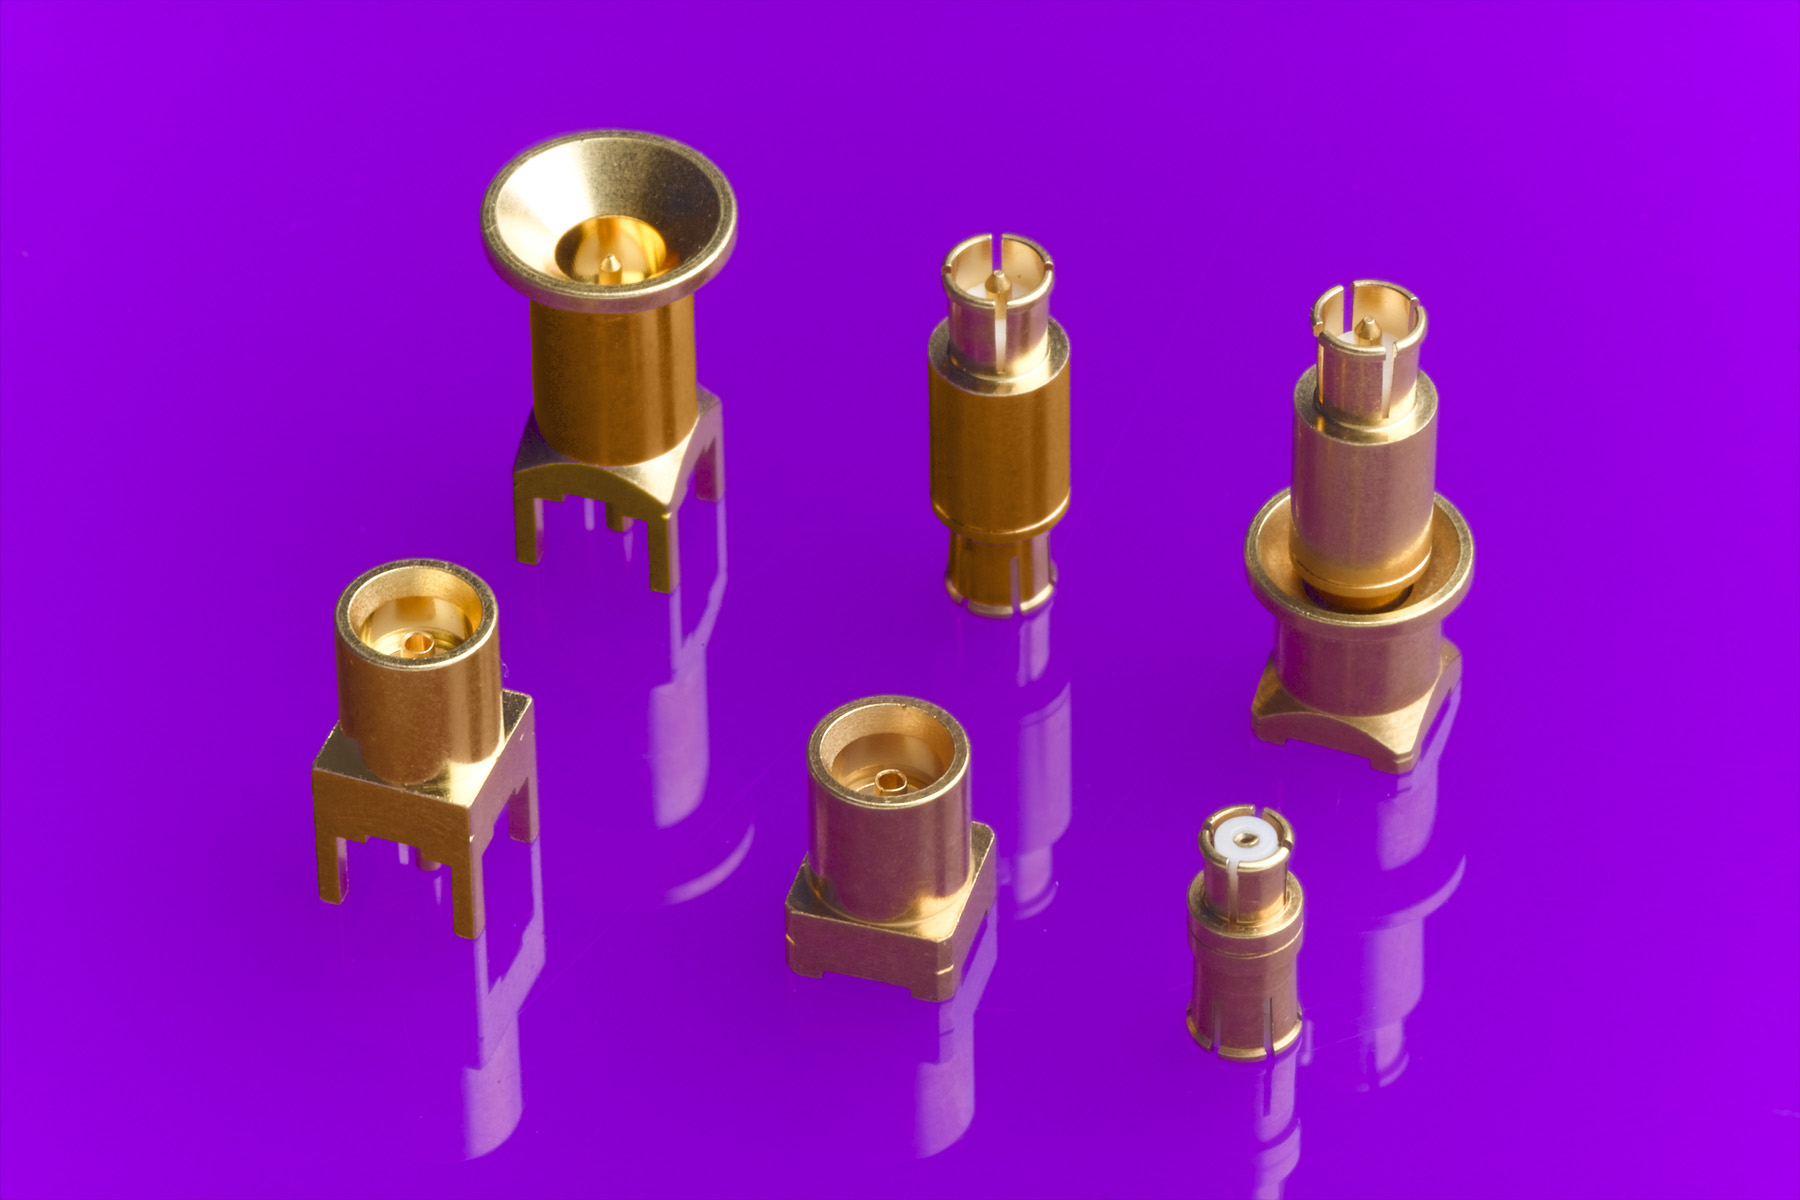 Molex Inc. and Radiall symmetrical adapters